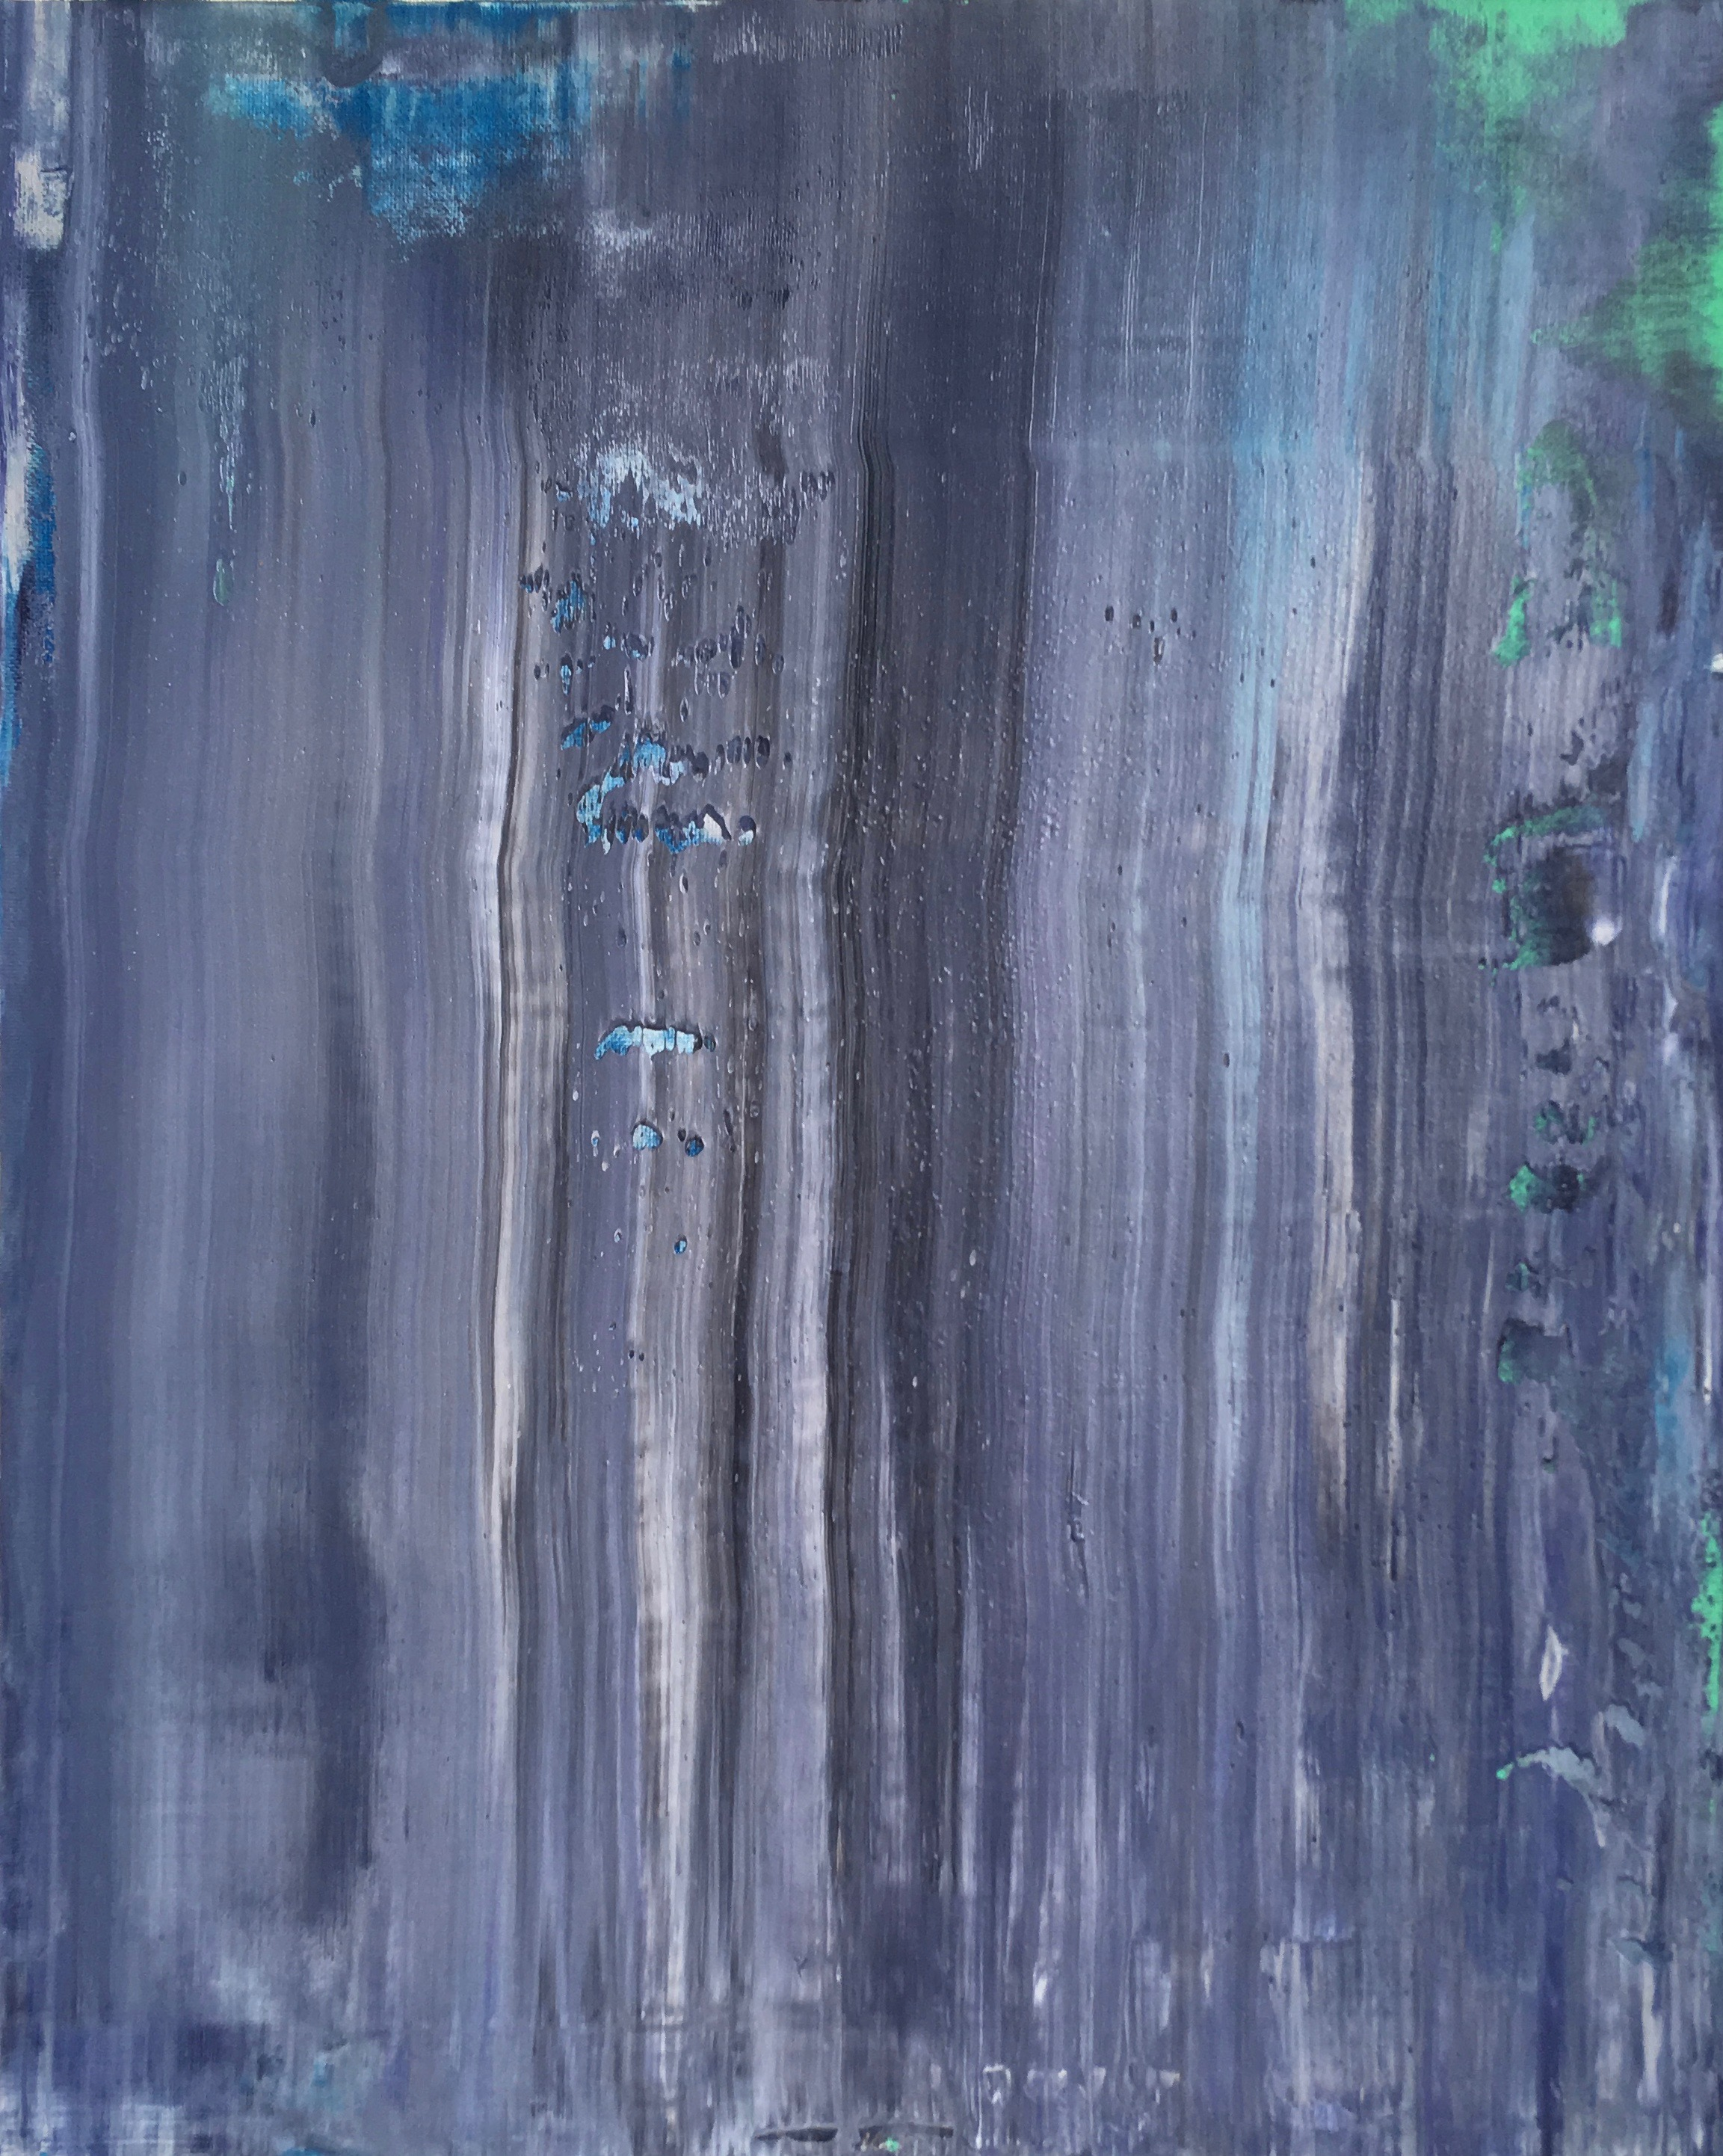 """Wash"" is an original, abstract oil painting created by Los Angeles based artist, Laura Viapiano."